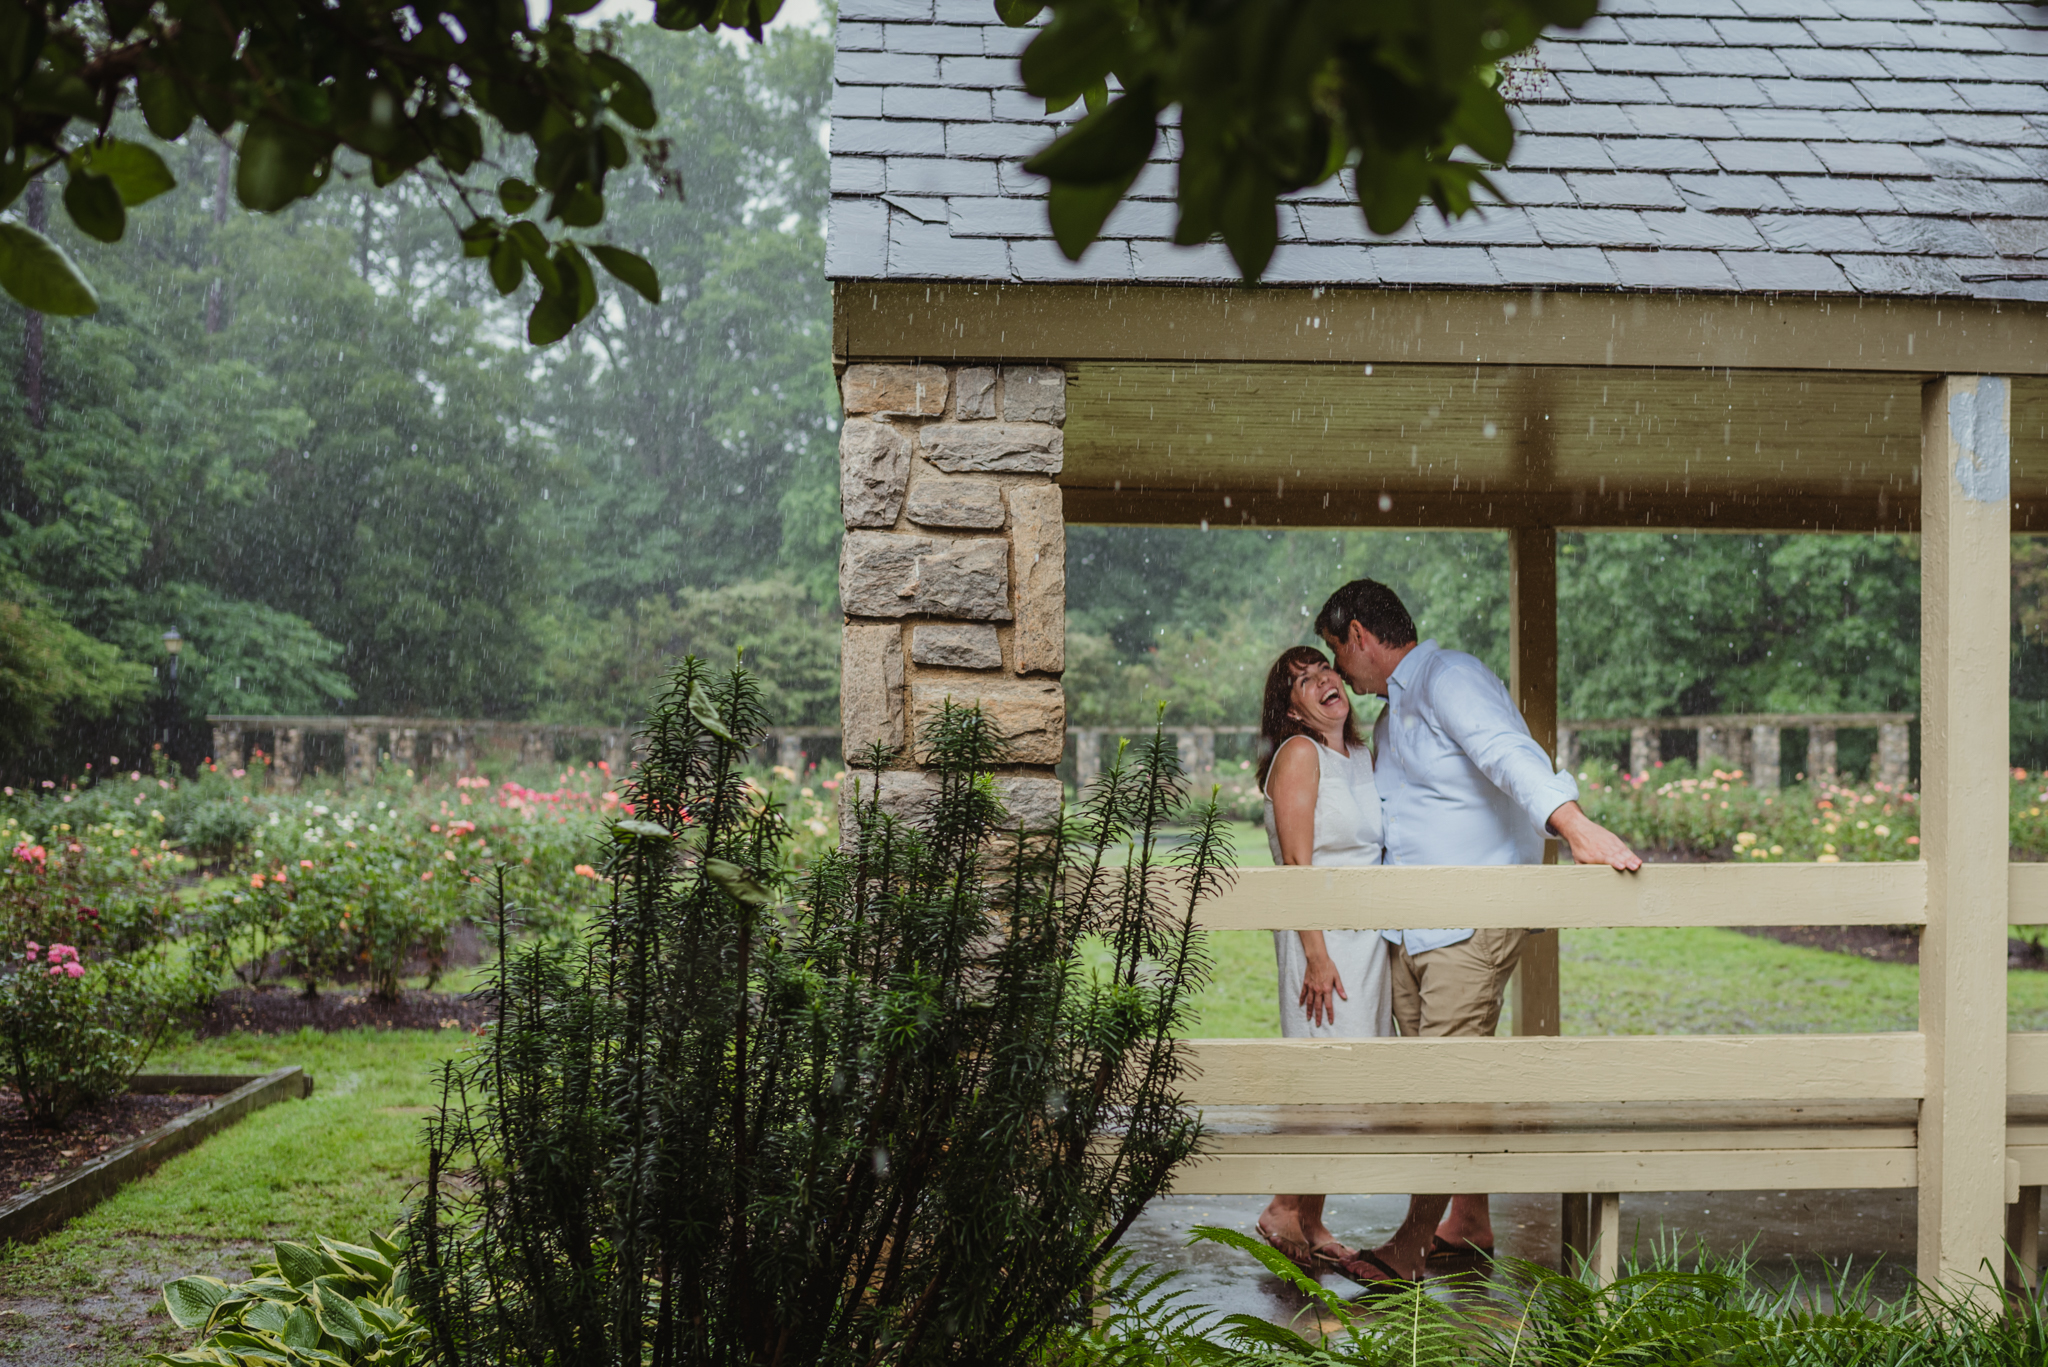 The bride and groom to be laugh together under the shelter during the rainstorm in Raleigh, during their engagement session with Rose Trail Images.